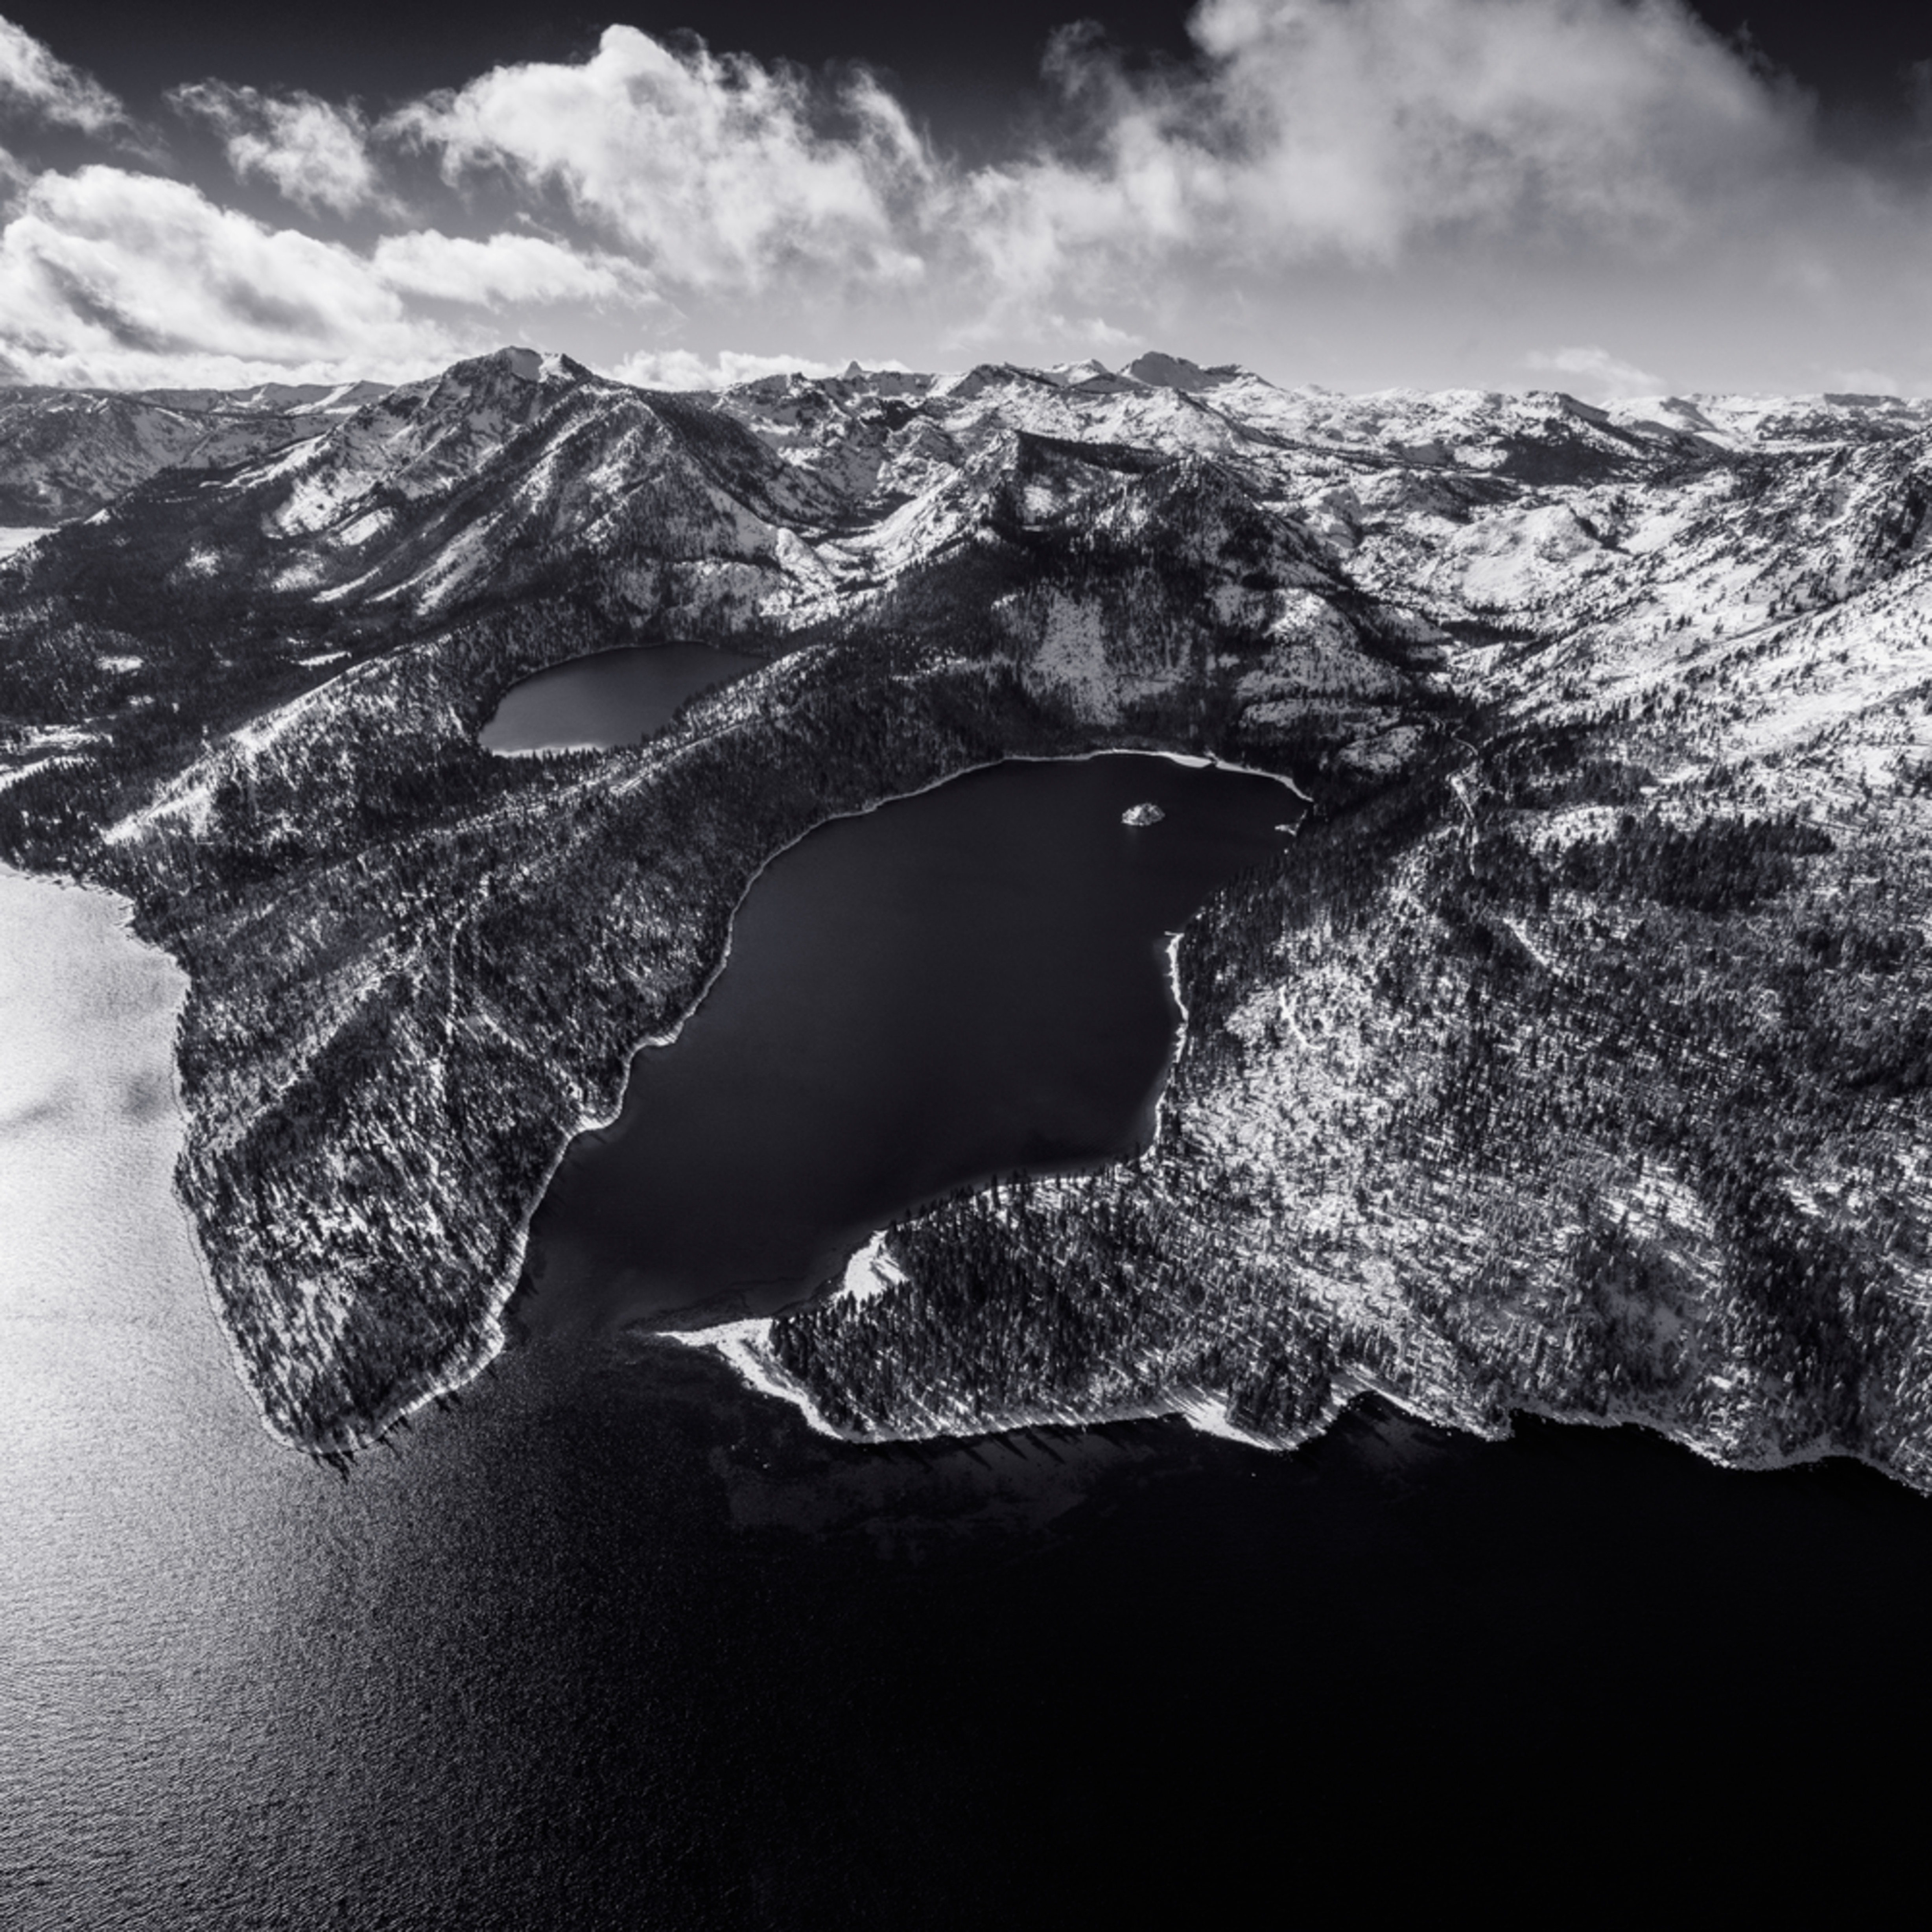 Emerald bay desolation aerial black and white signature jhzu8n